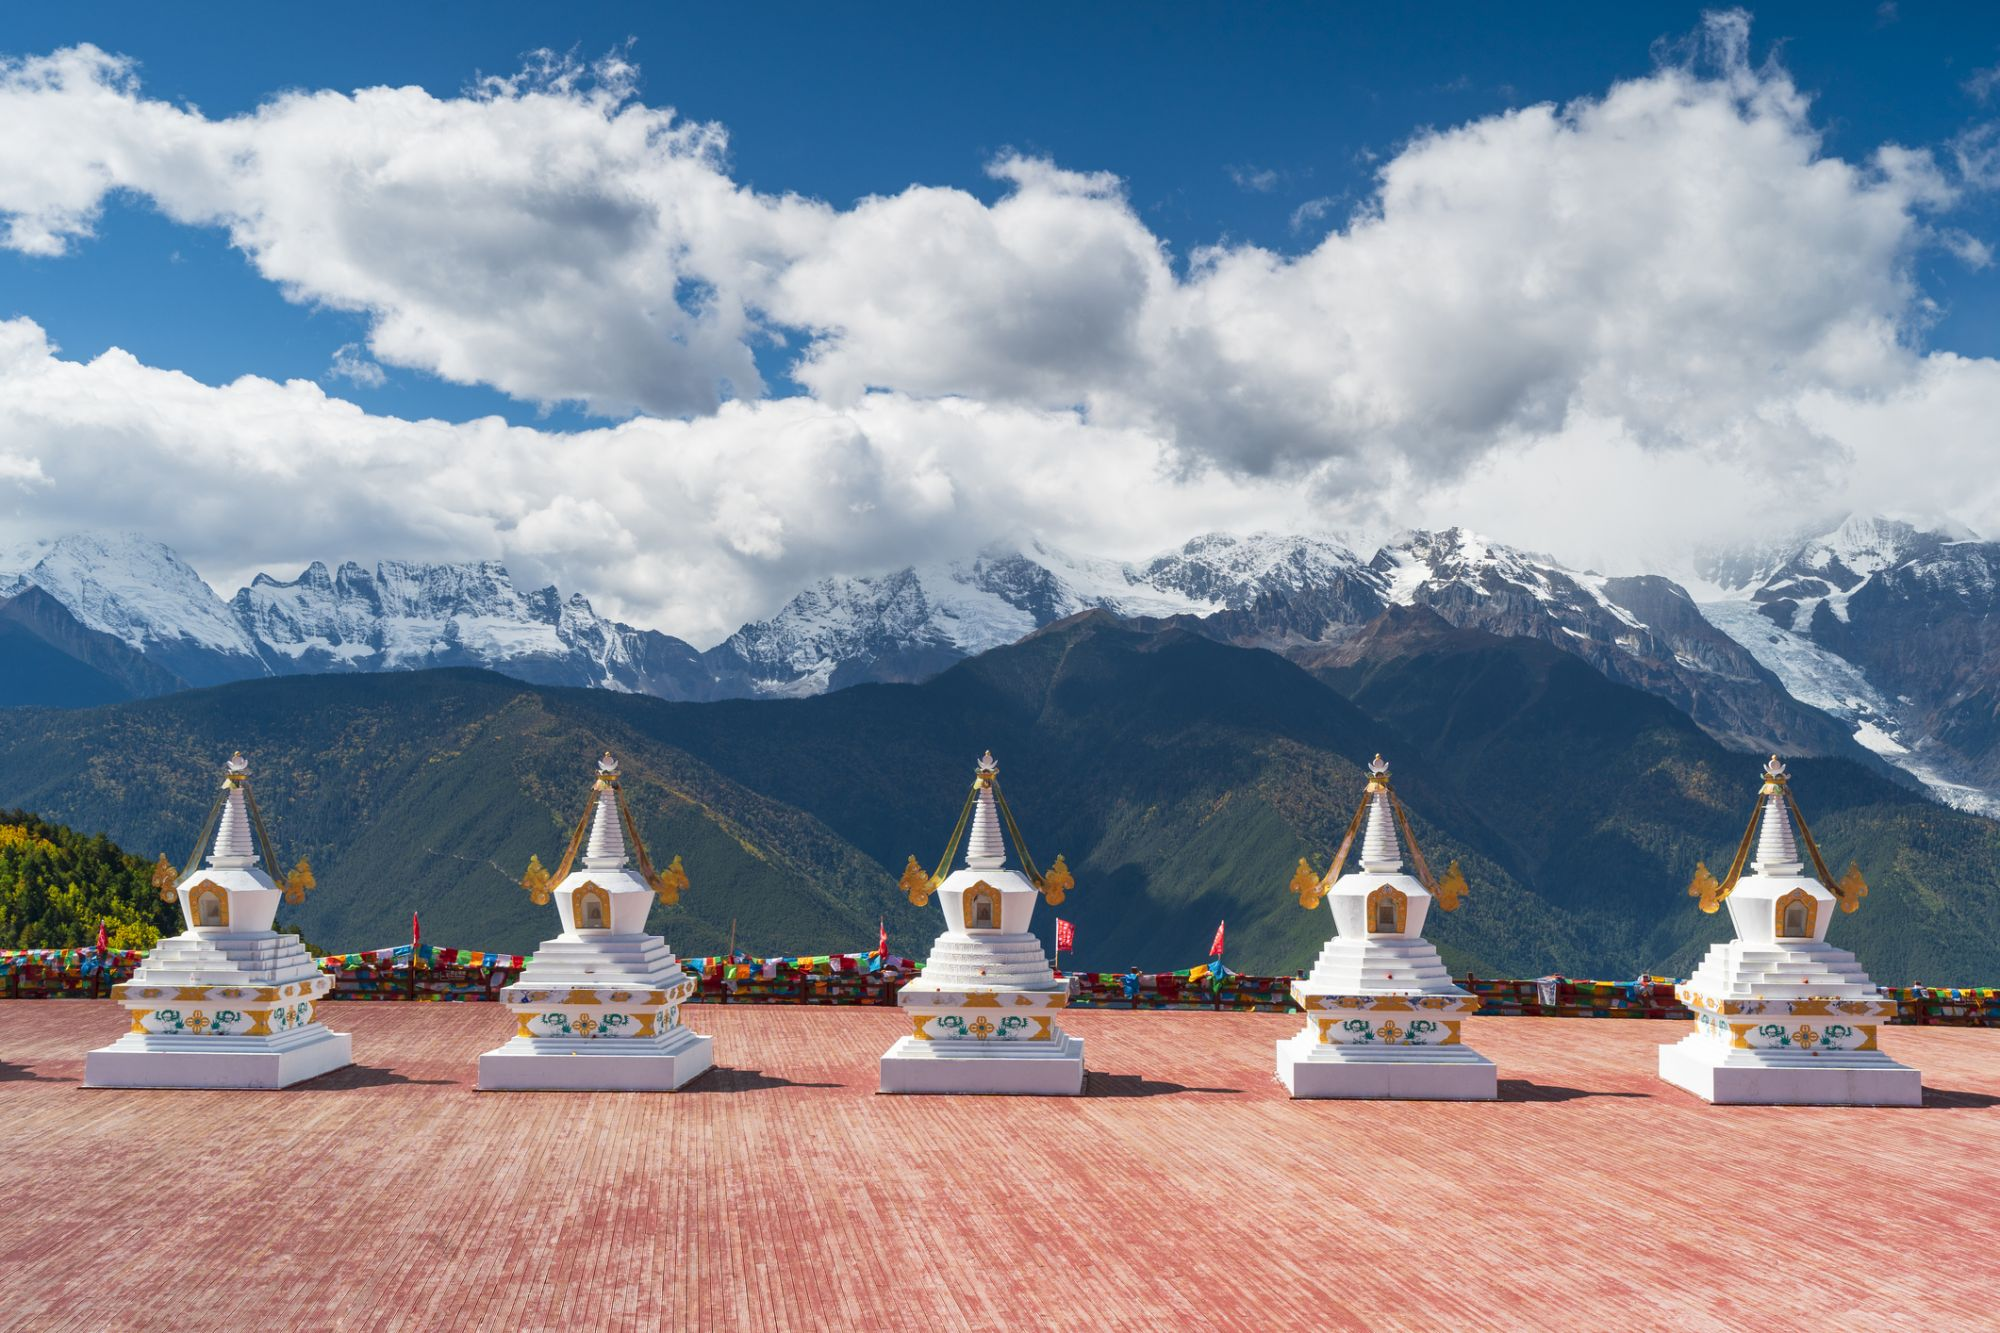 Stupa and the Meili snow mountain range in Deqen county, Diqing Tibetan Autonomous Prefecture of southwest China's Yunnan Province